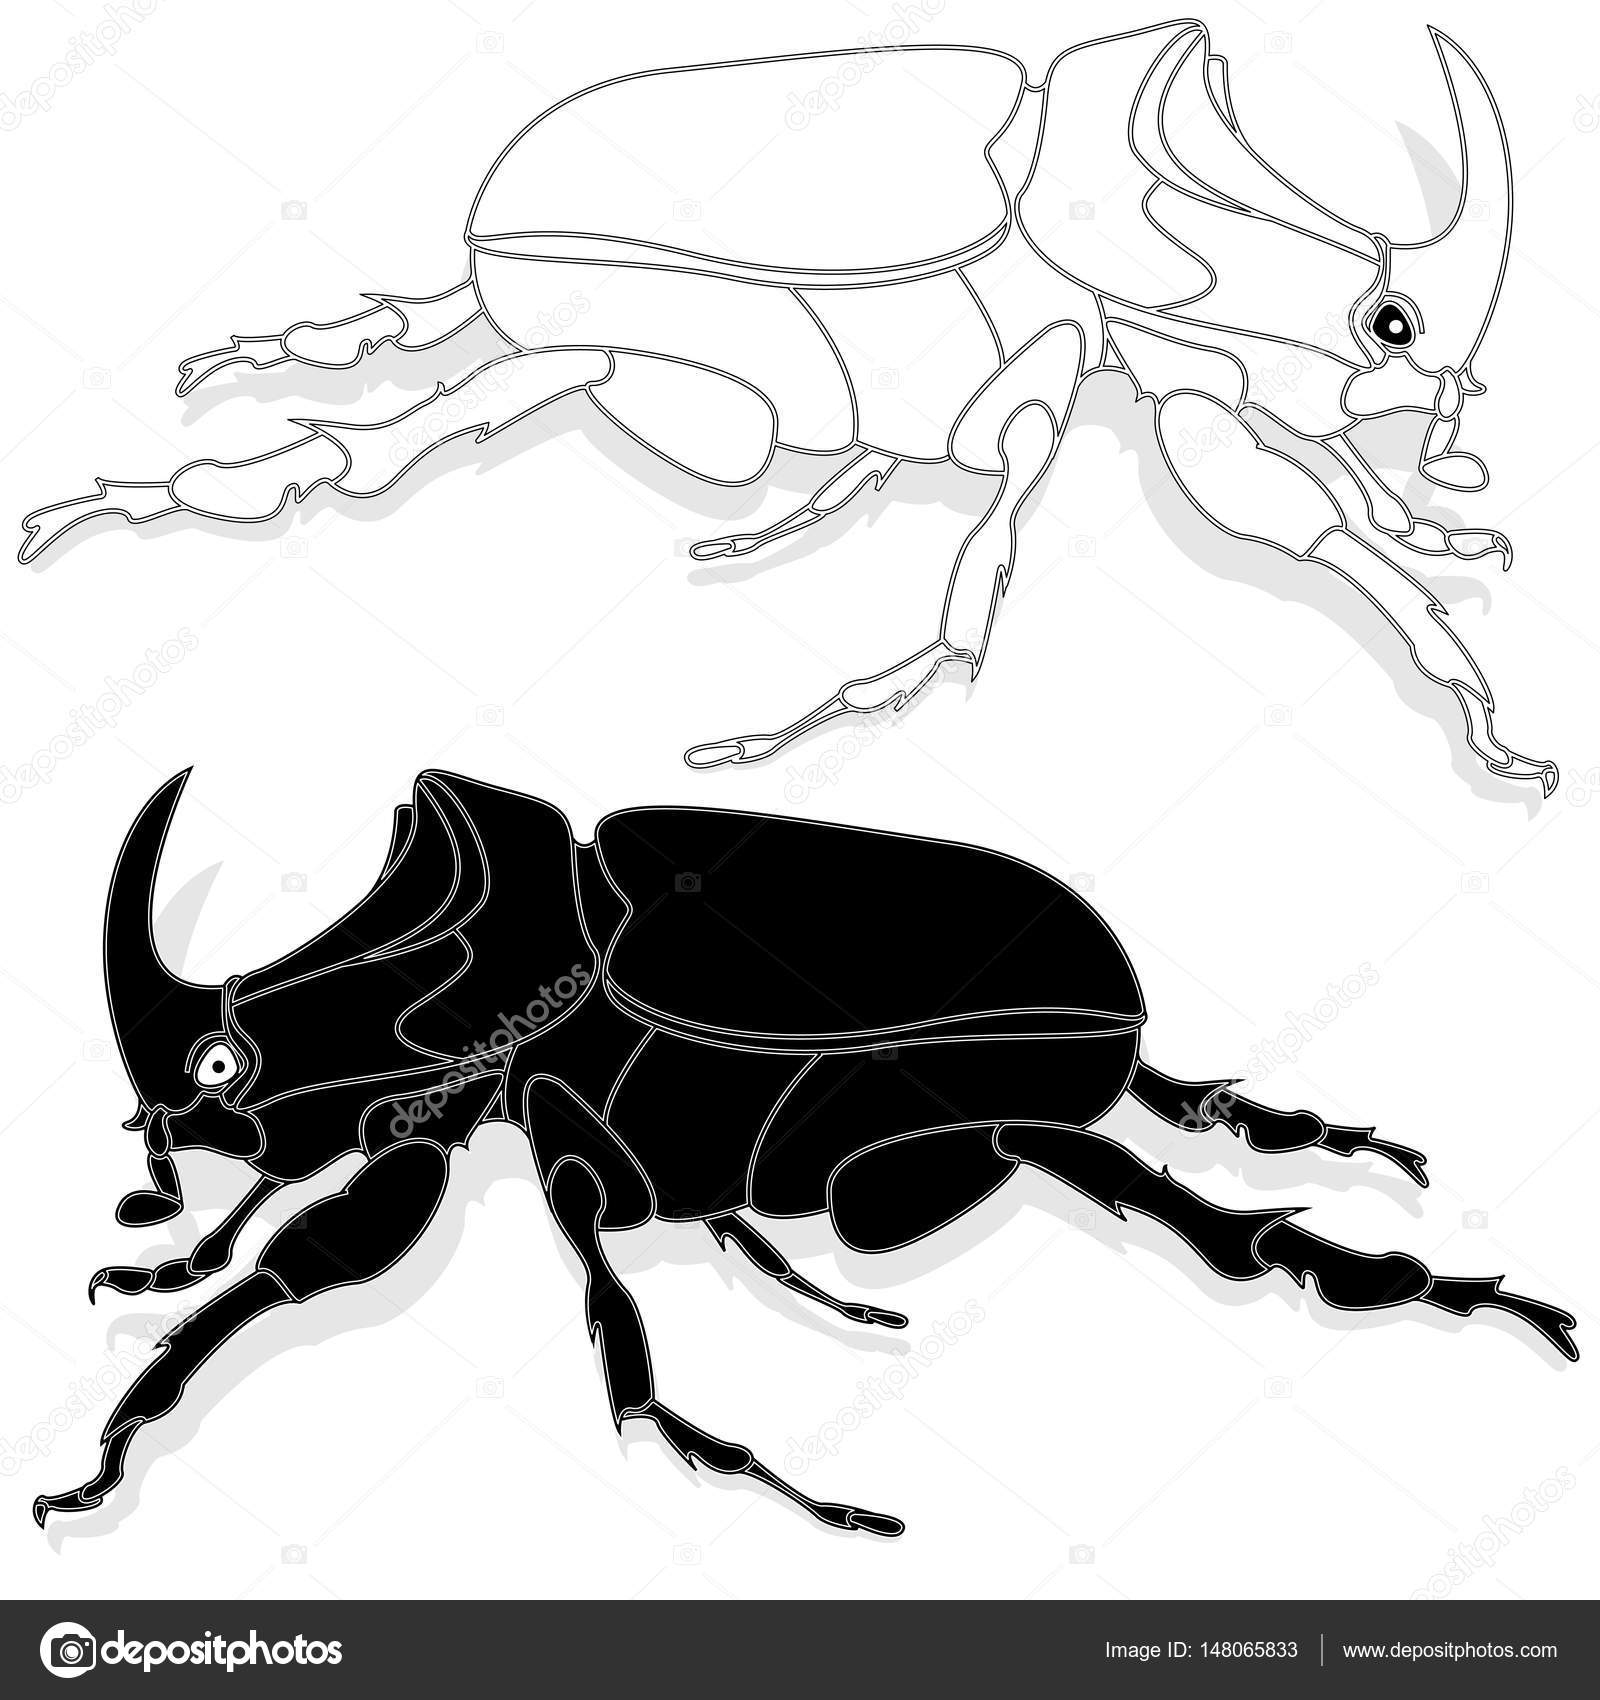 beetle hand drawn sketch stock vector alekseyk1975 148065833 Rhinoceros Snake beetle hand drawn sketch for adult coloring book page t shirt emblem tattoo with doodle zentangle design elements vector by alekseyk1975